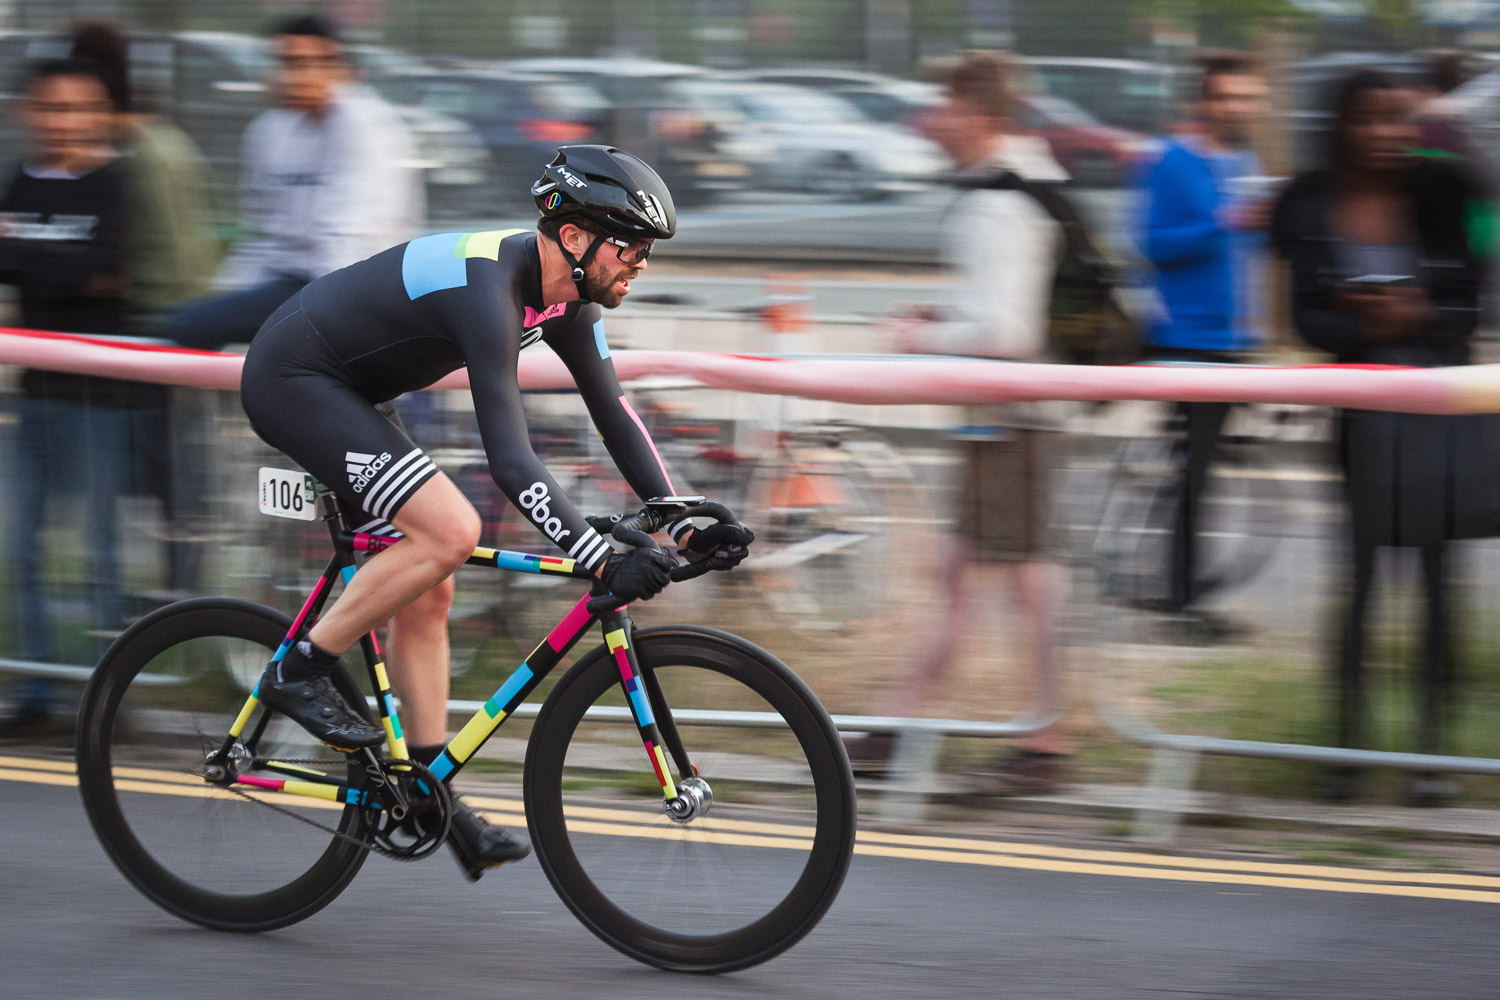 8bar team red hook crit london stefan haehnel 44 - 8bar team x Kappstein - High quality components for your bike